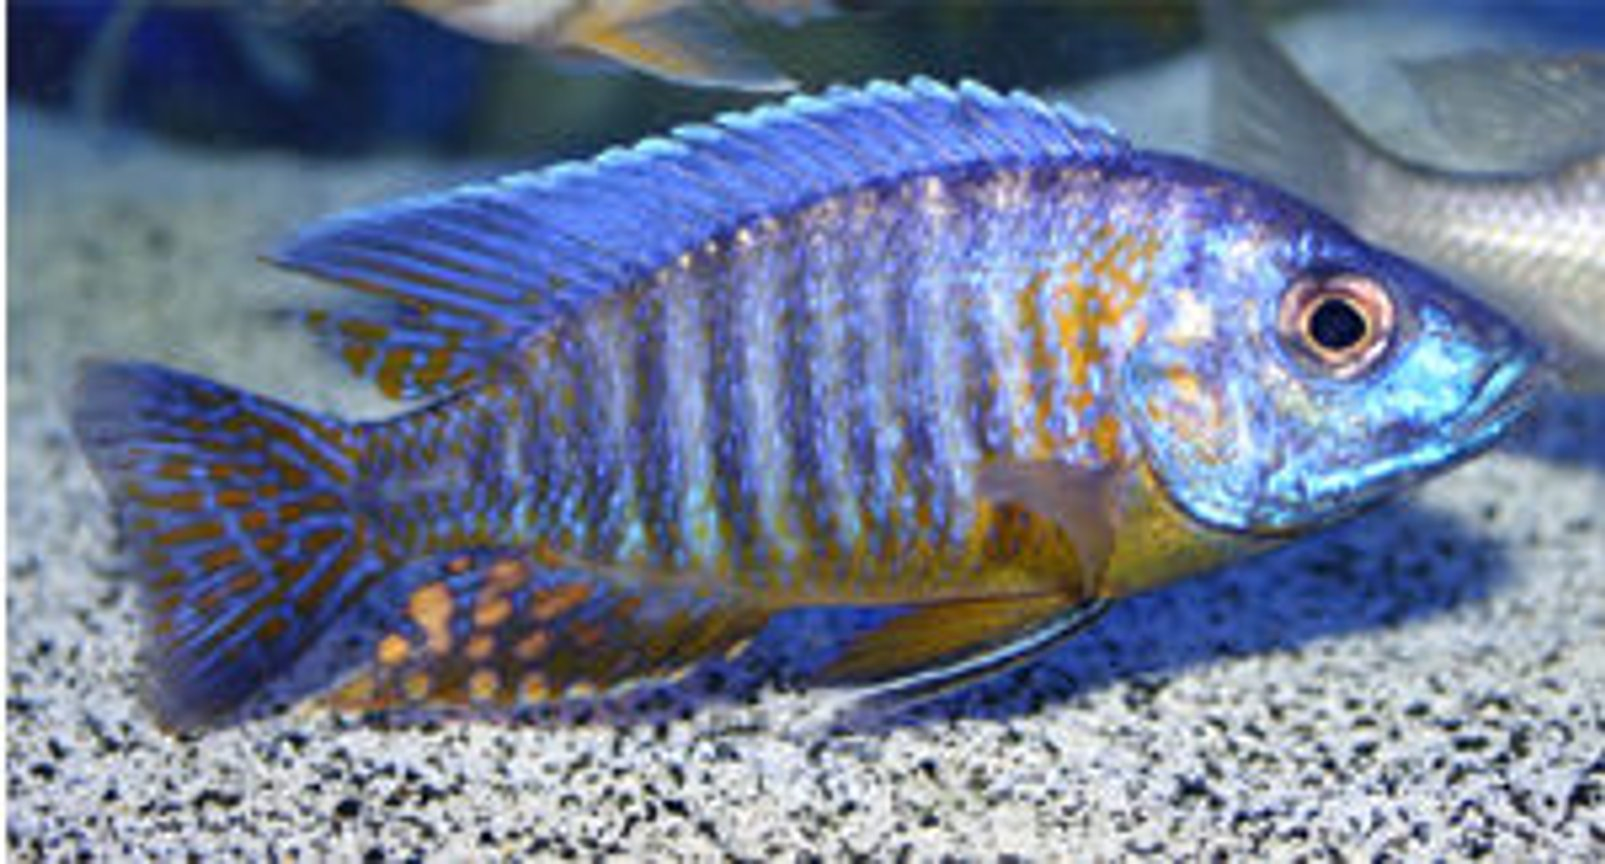 freshwater fish - aulonocara korneliae - orange shoulder peacock stocking in 90 gallons tank - Aulonocara korneliae